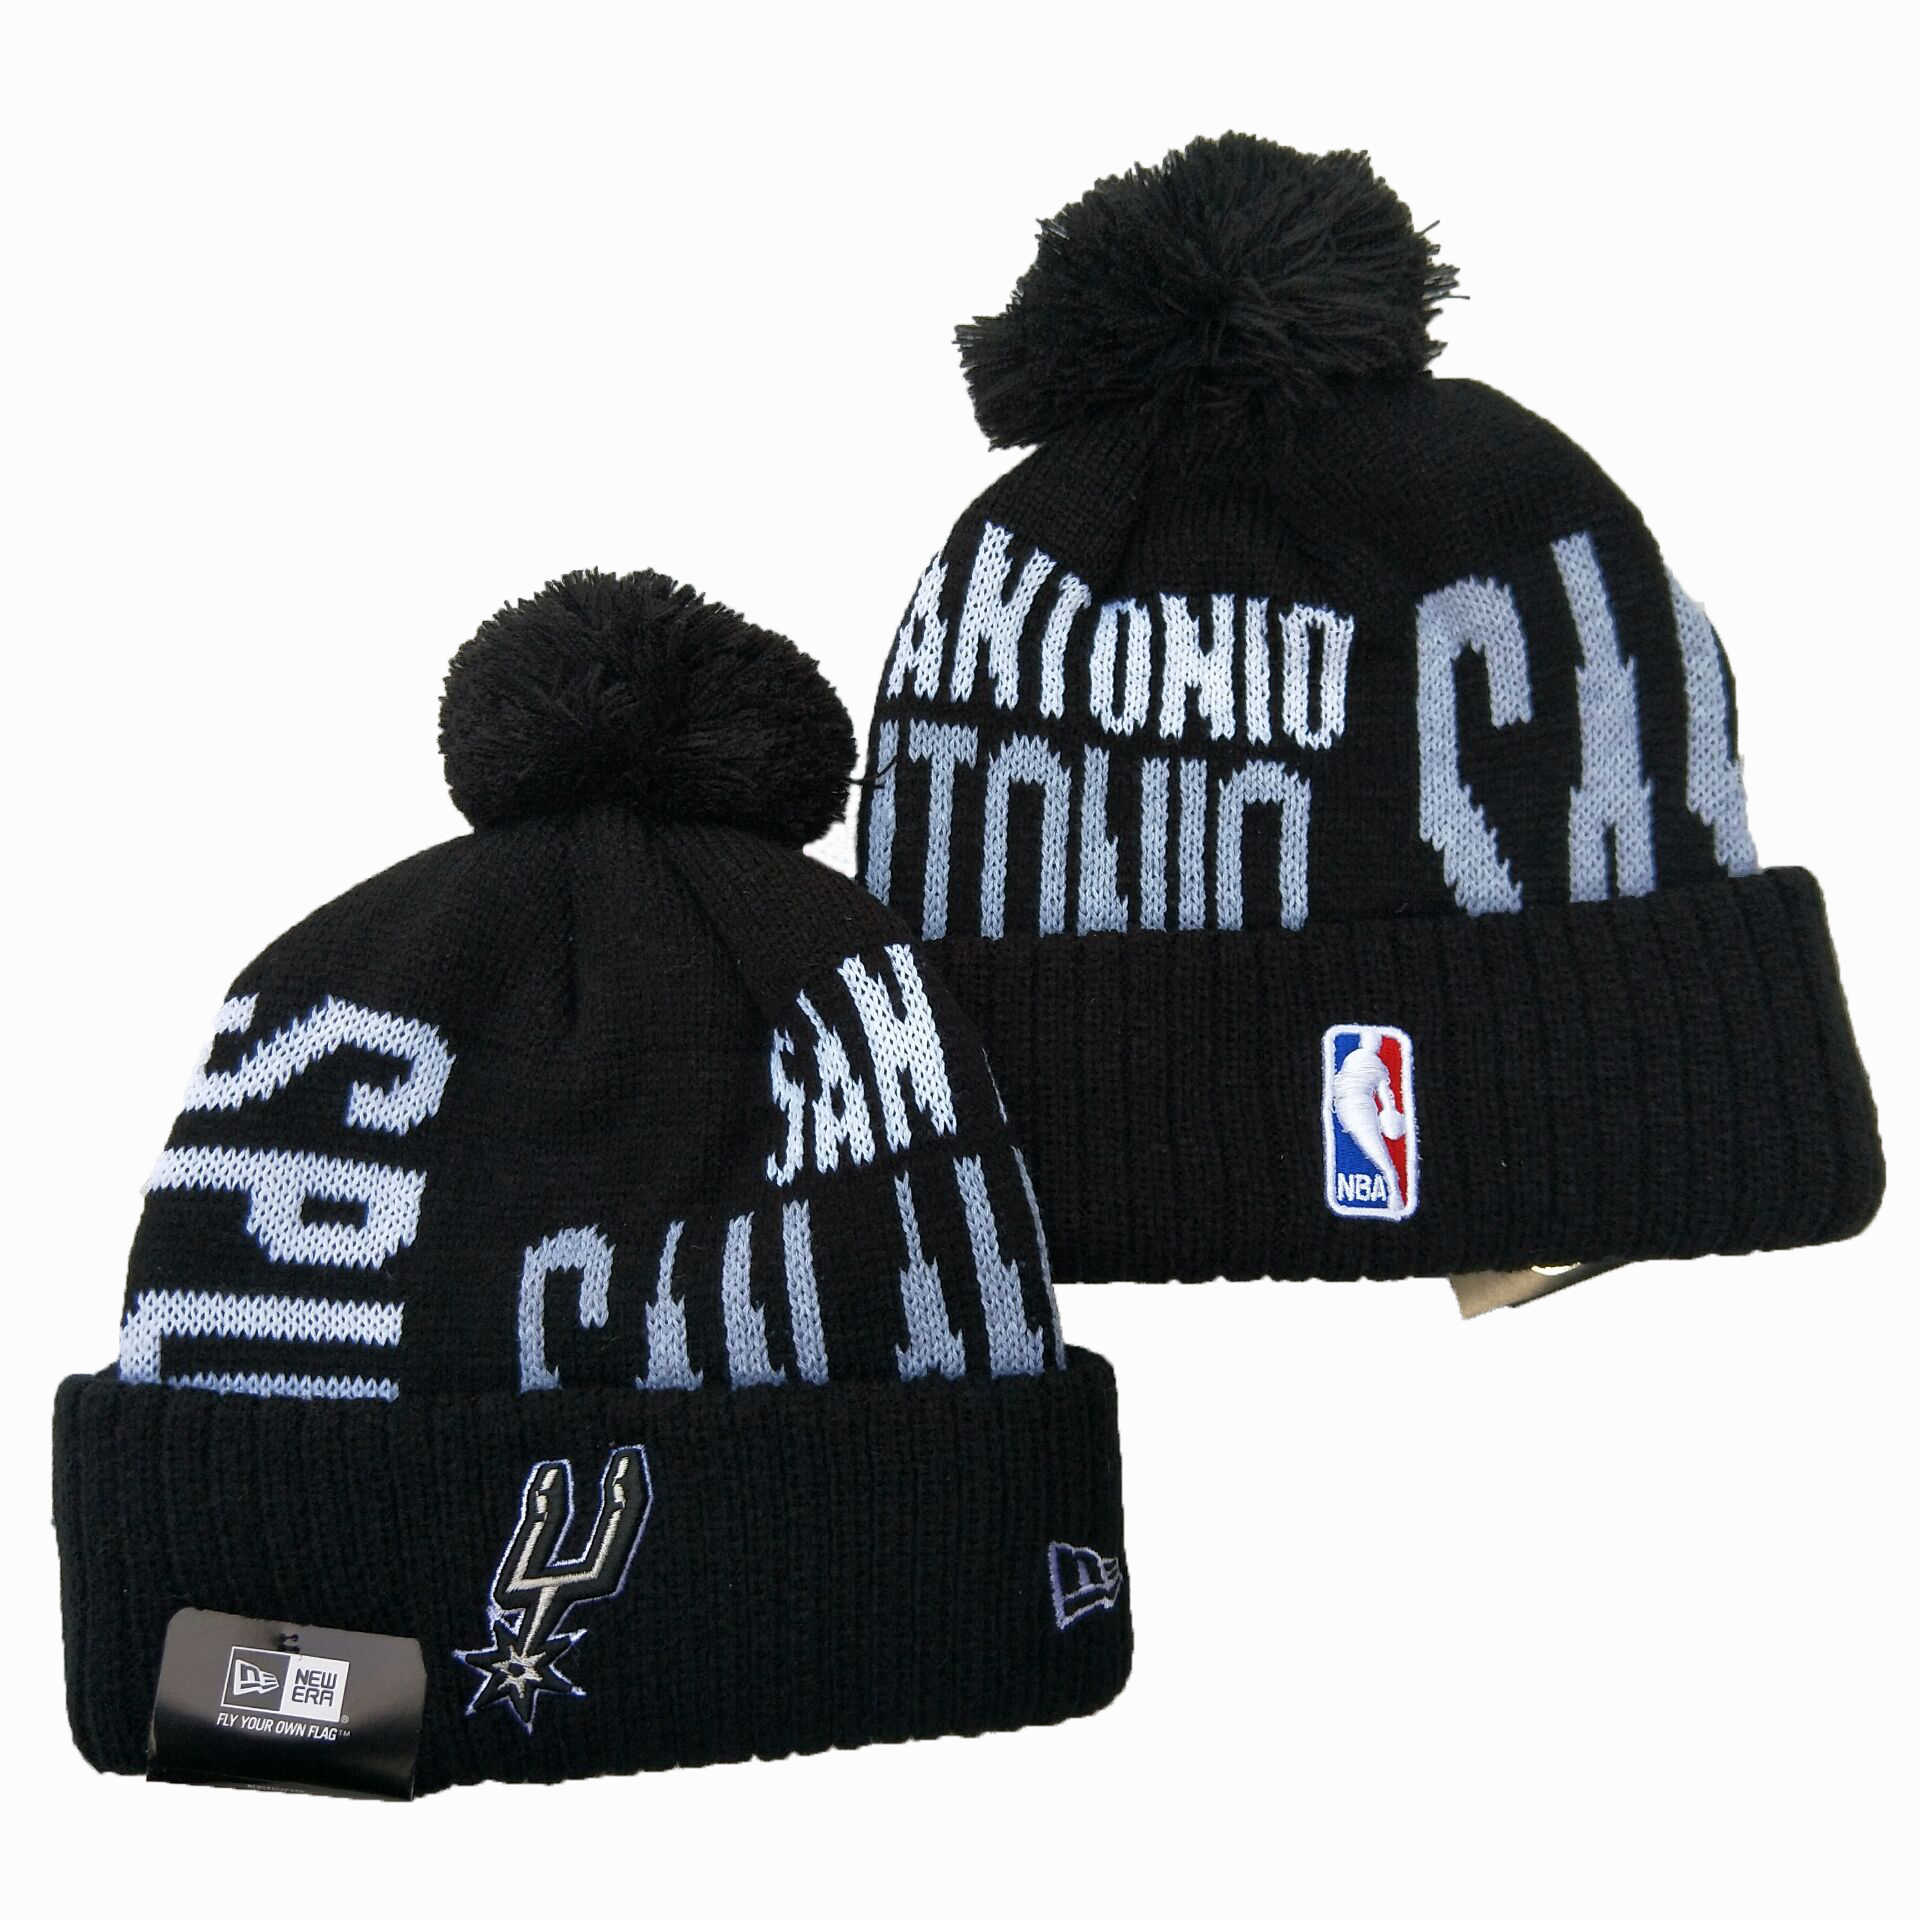 Spurs Team Logo Black Wordmark Cuffed Pom Knit Hat YD